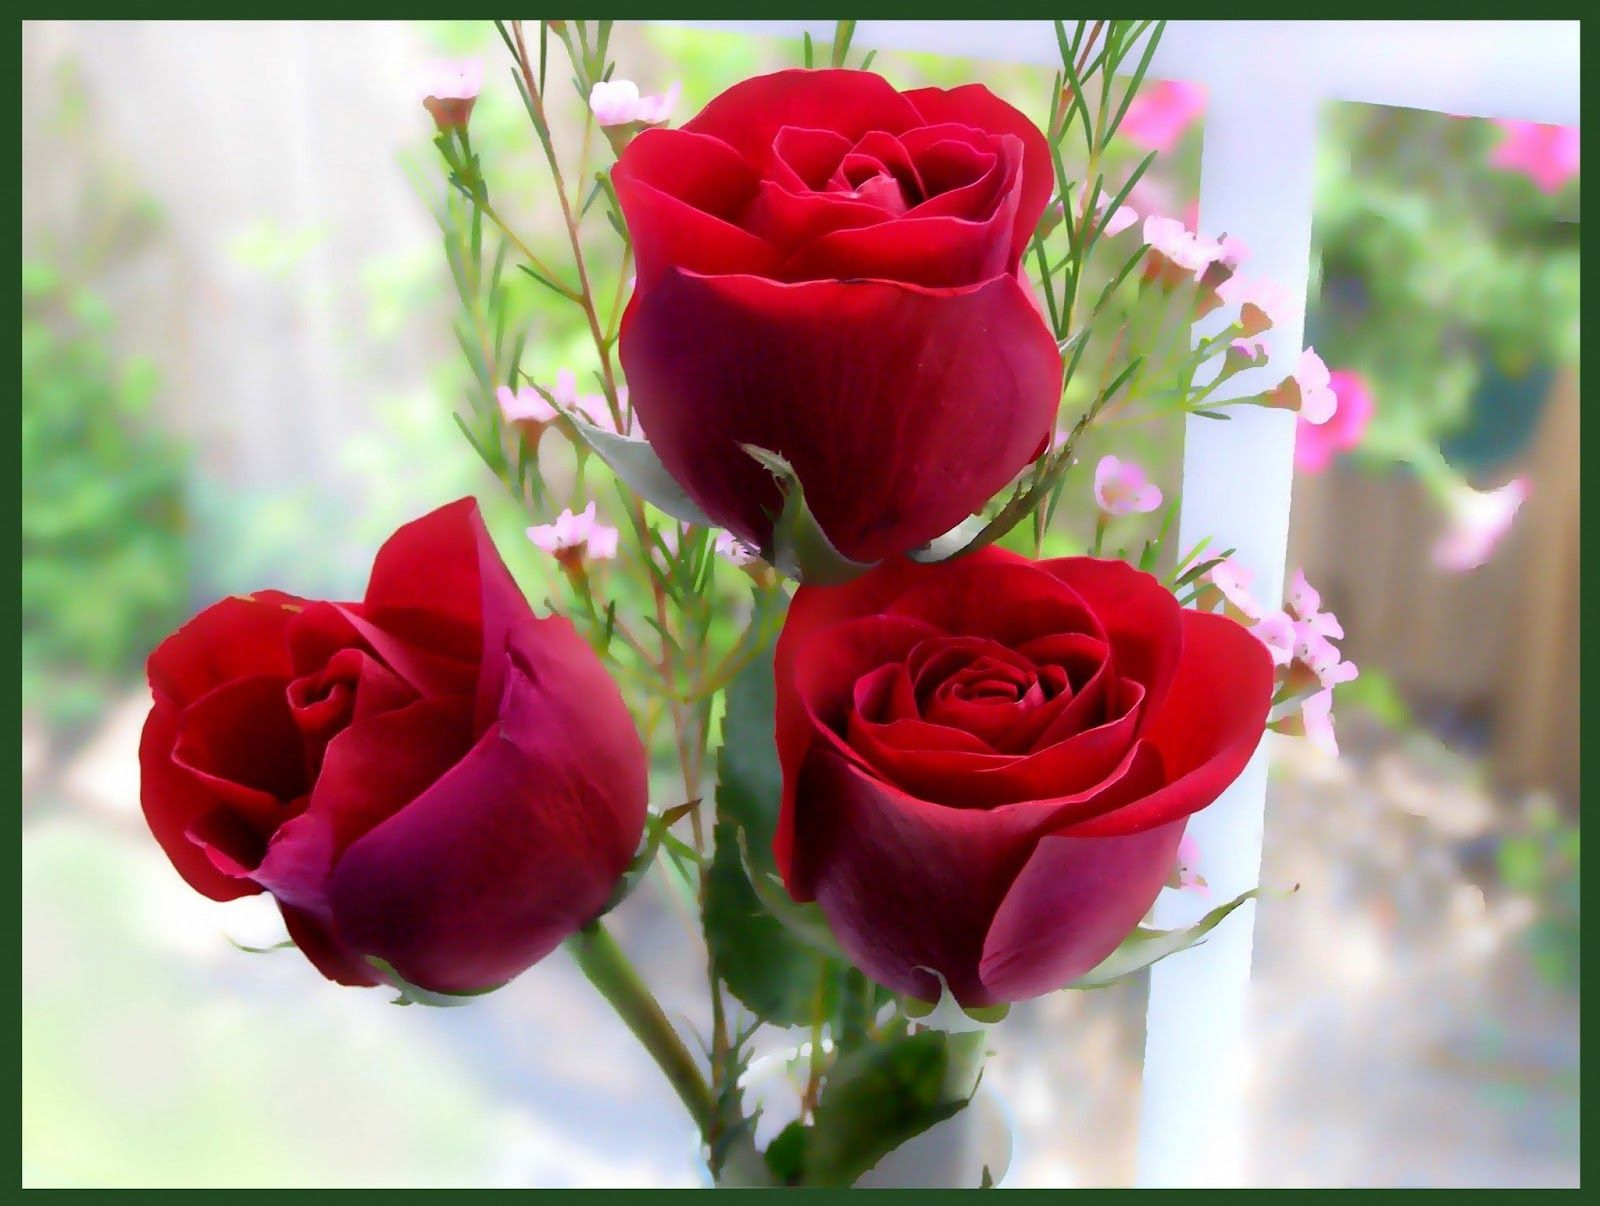 Rose Flowers Wallpaper Android Apps on Google Play HD